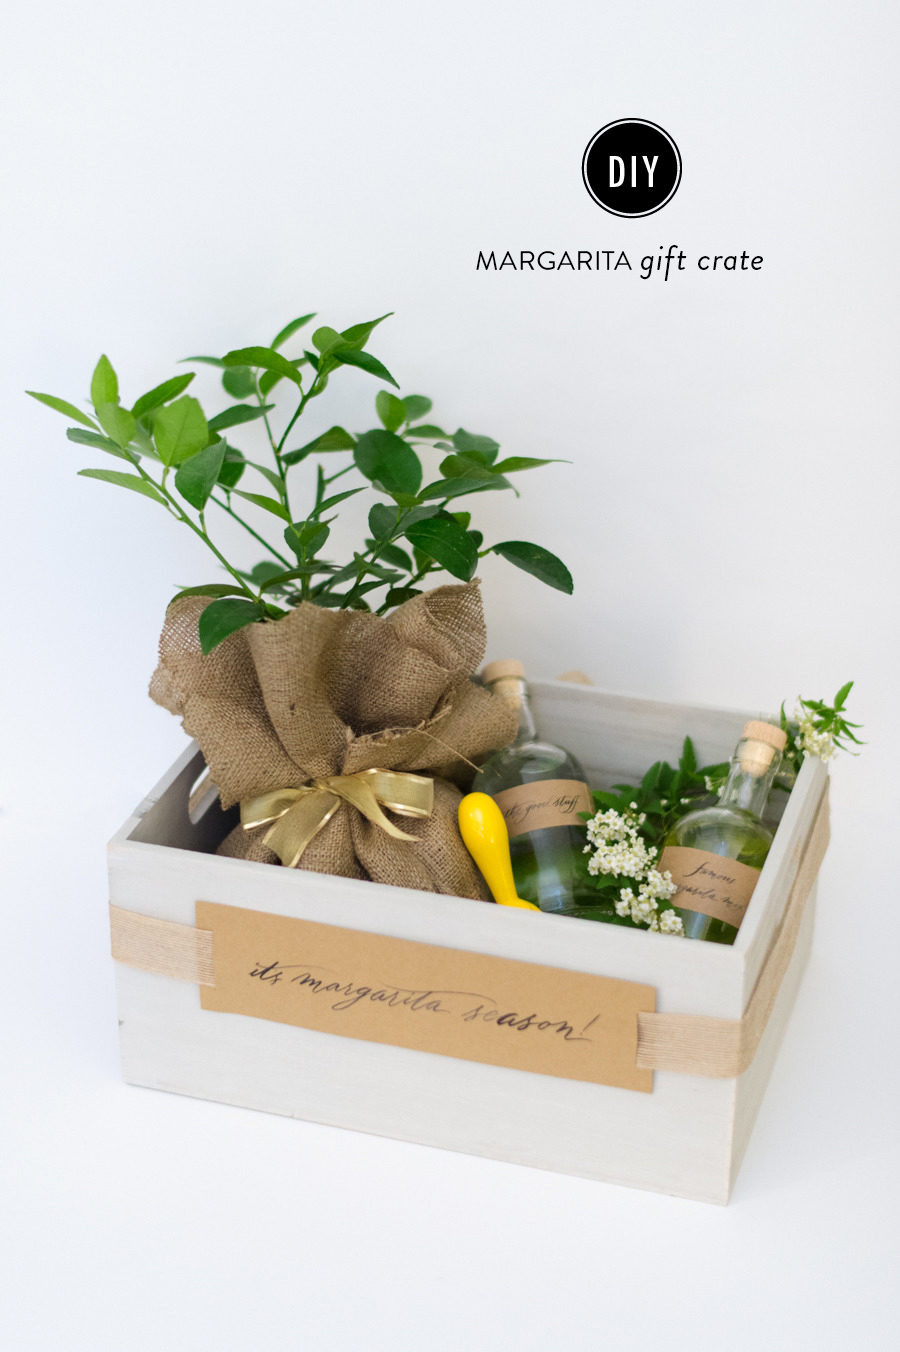 DIY Margarita Gift Crate